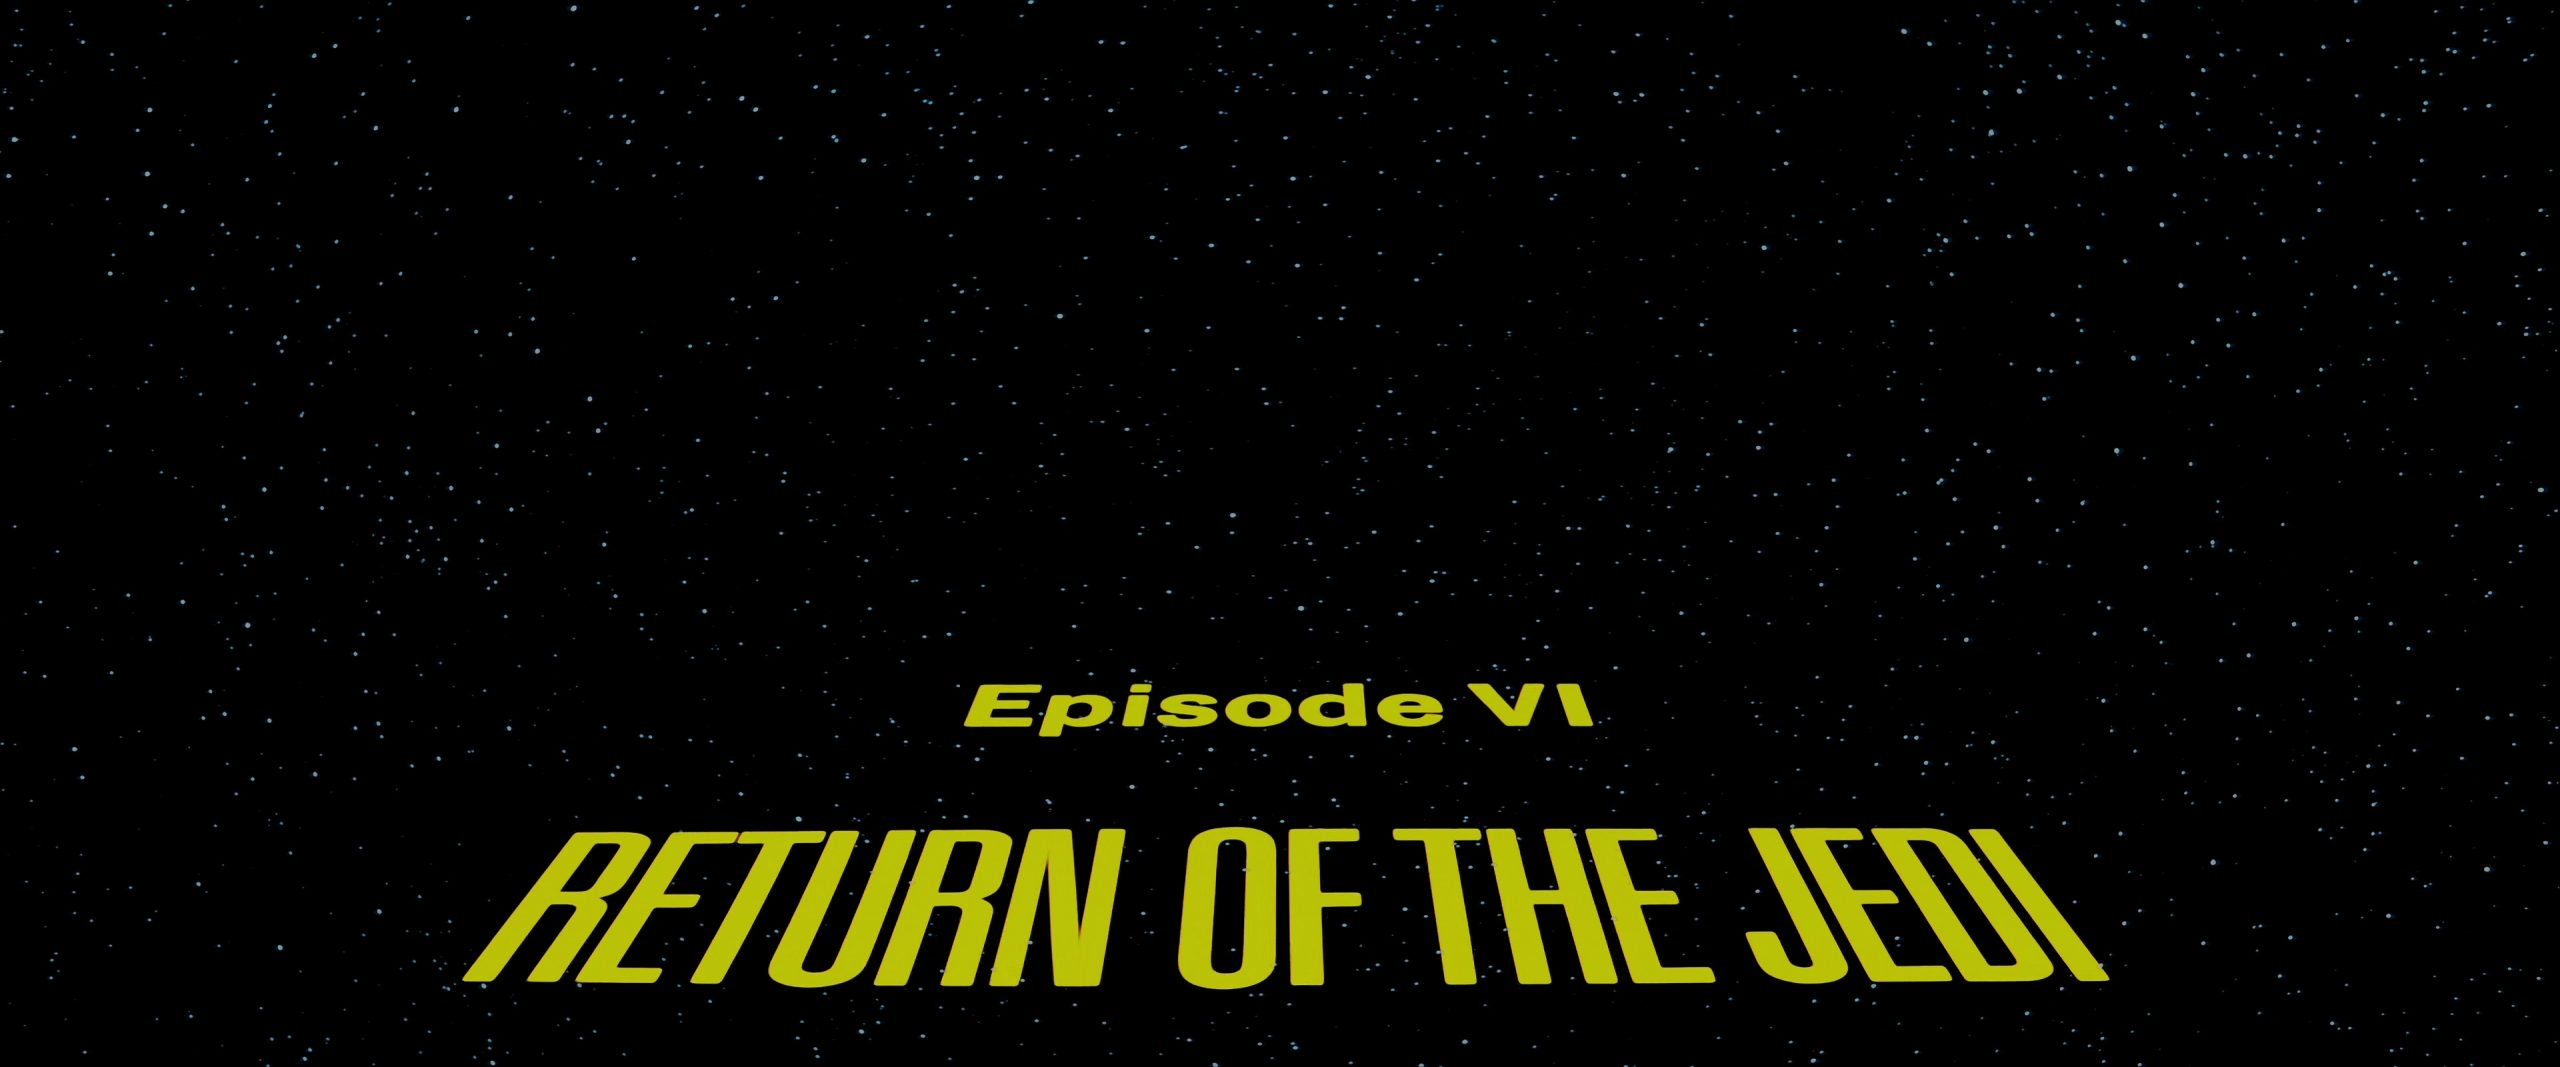 Star Wars: Episode VI – Return of the Jedi (1983) [4K]